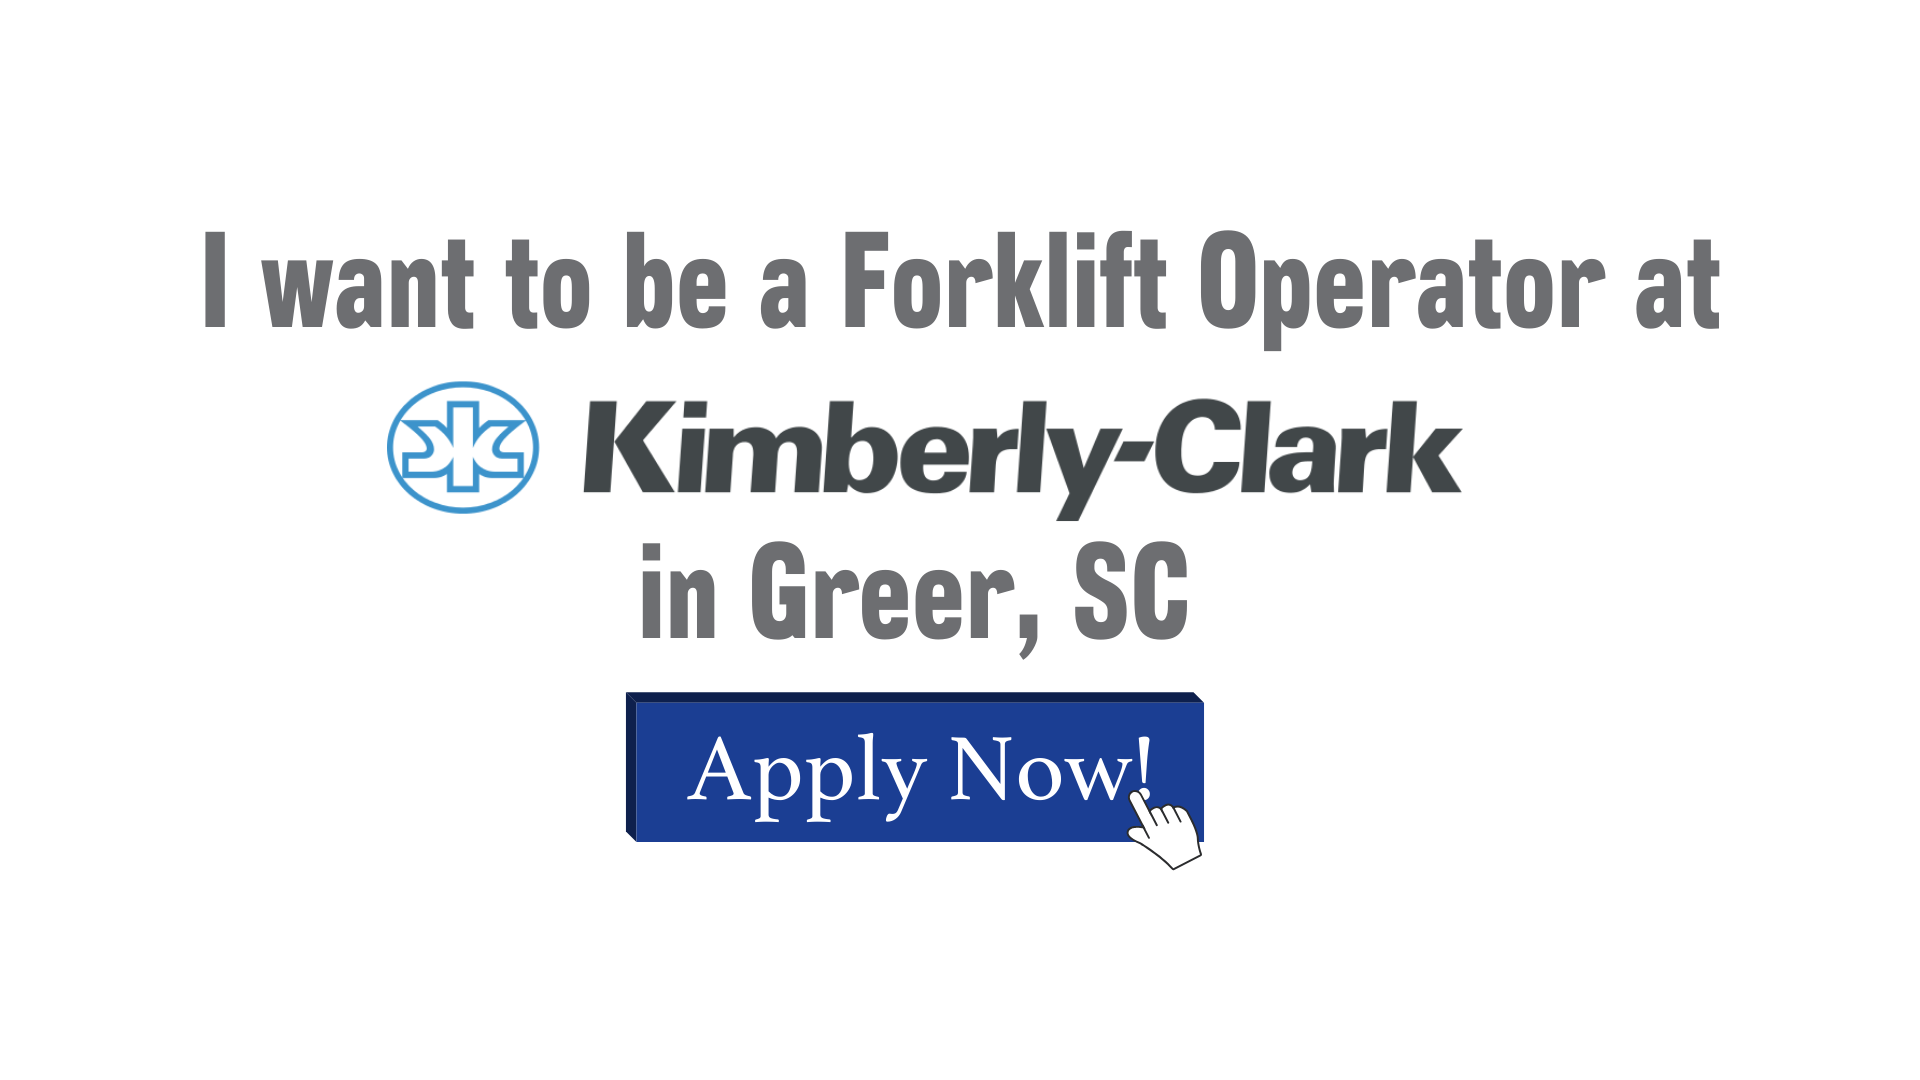 I want to be a Forklift Operator at Kimberly-Clark in Greer, SC